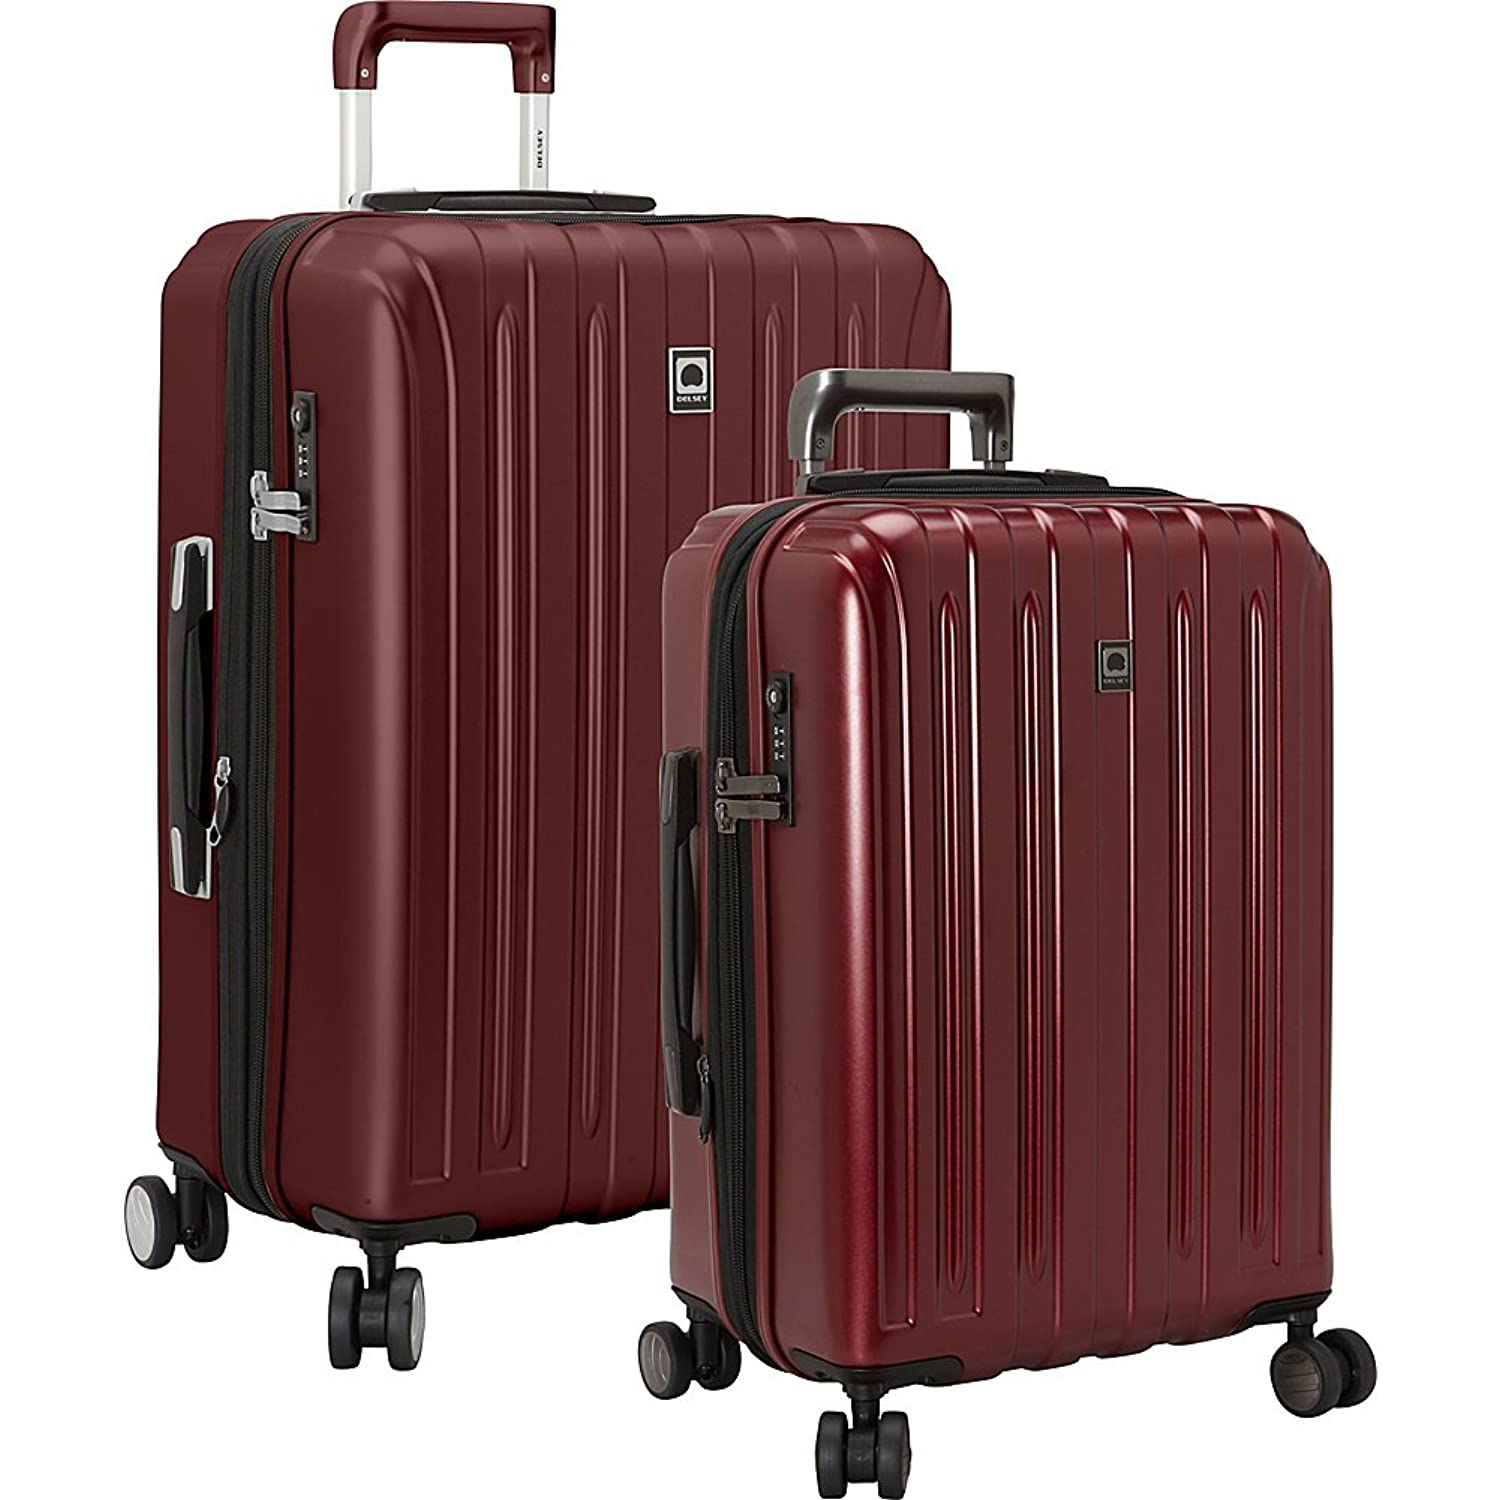 Delsey Luggage Sets On Sale 2 Piece Cherry Red Hardside Spinner ...